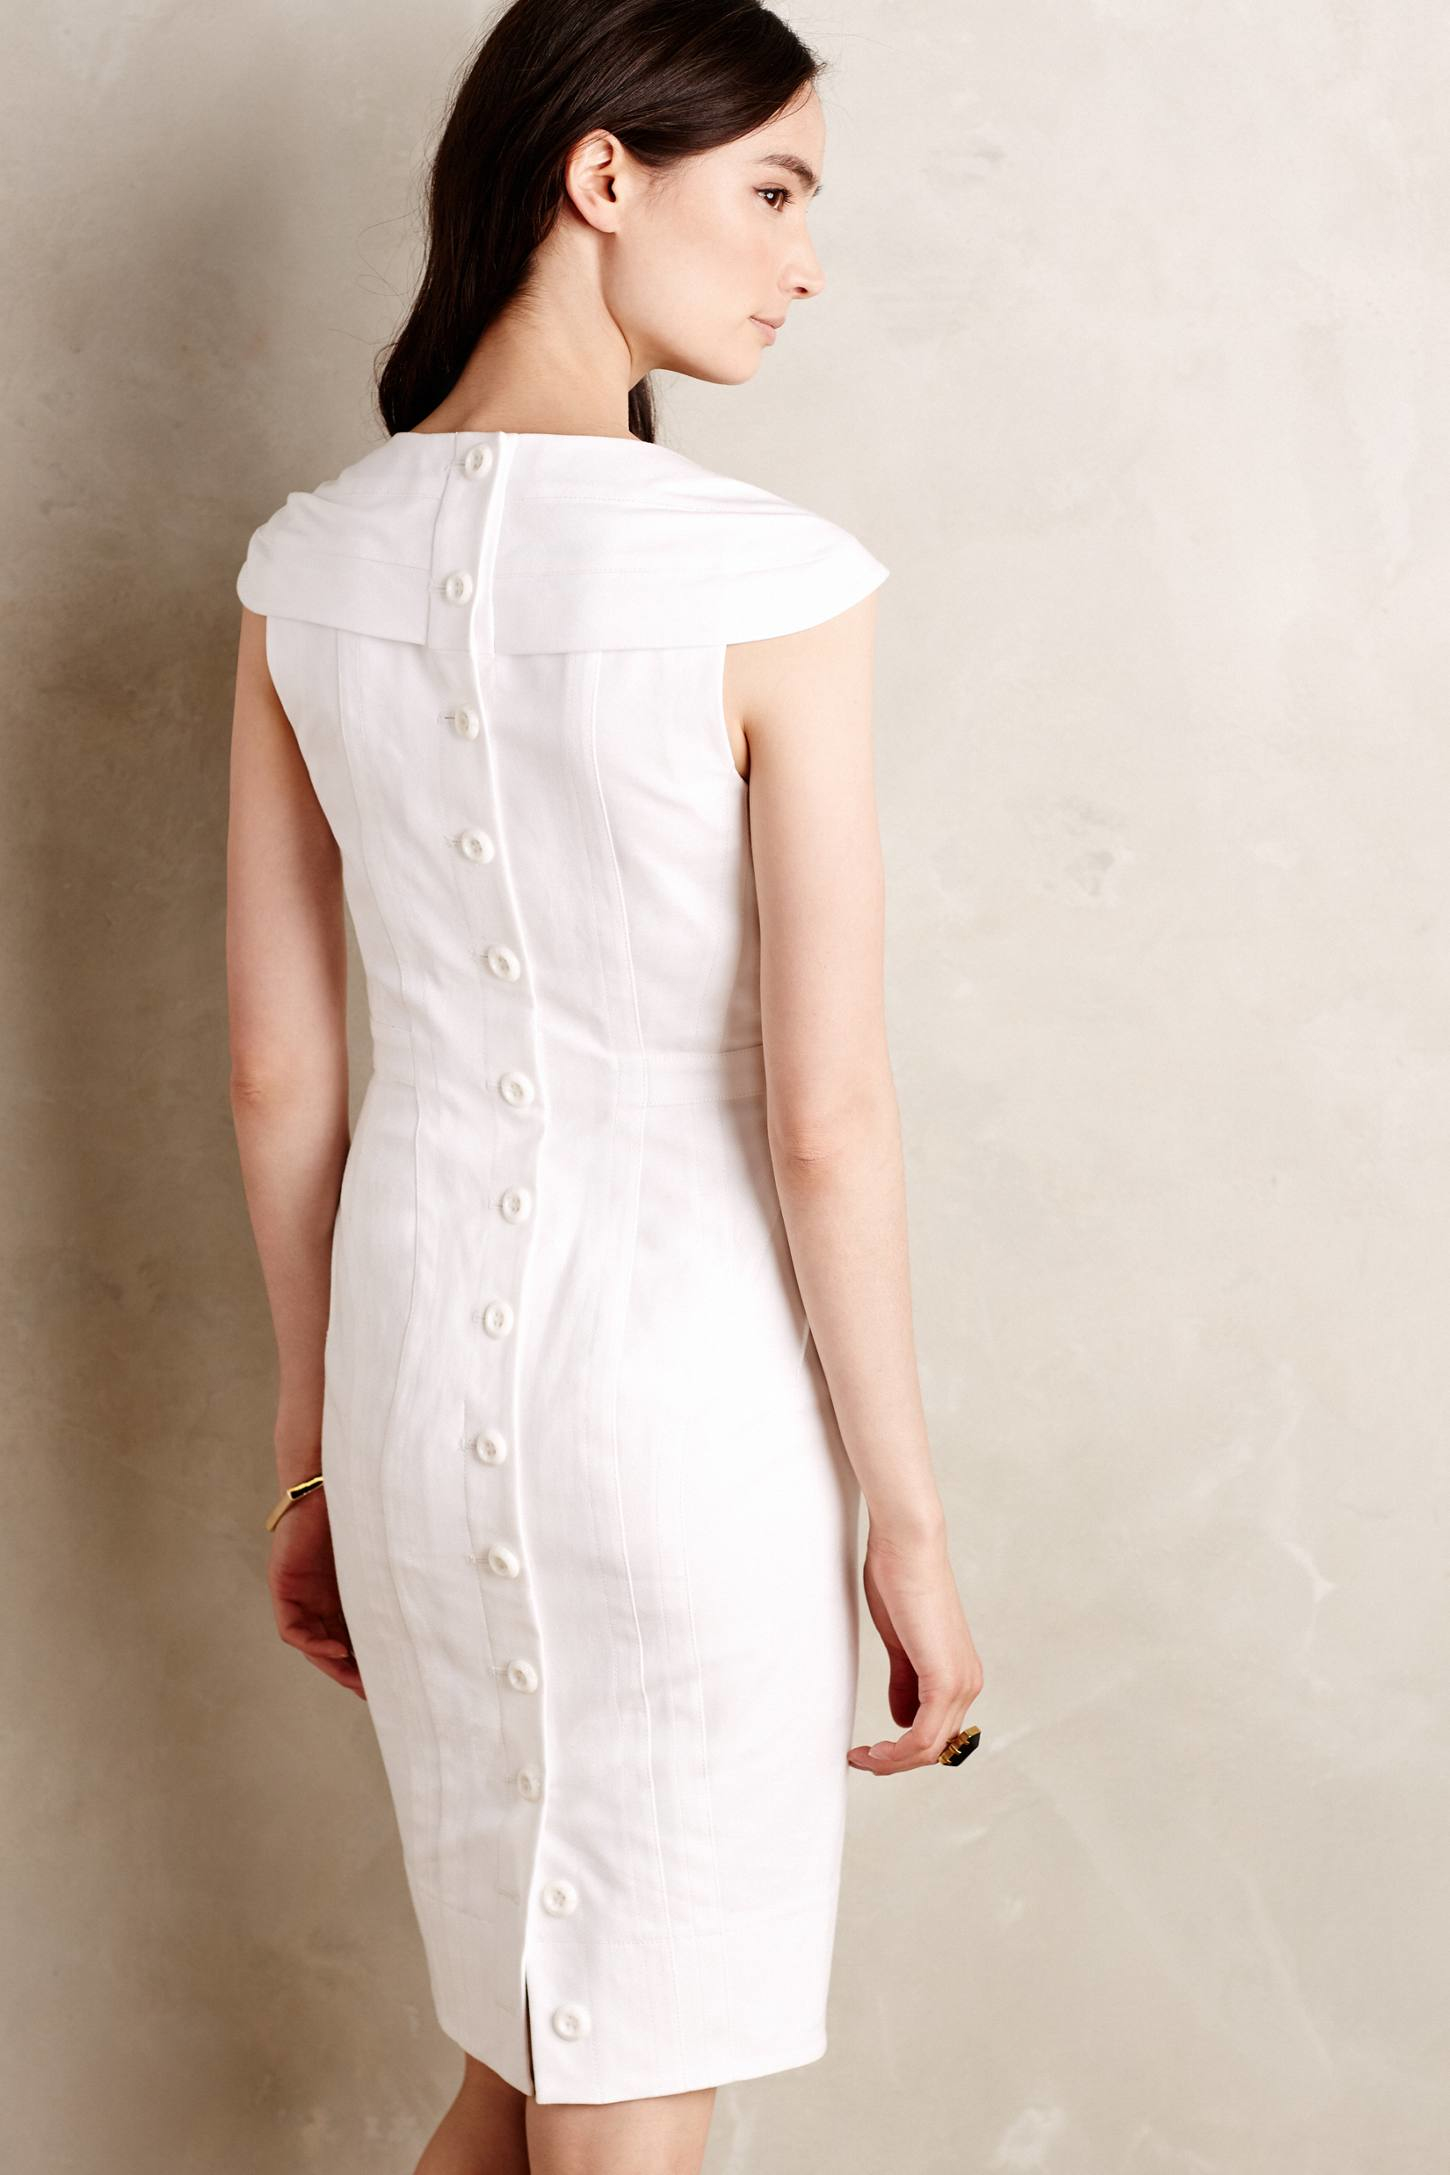 Byron lars beauty mark button back pencil dress in white for How to get makeup out of white shirt